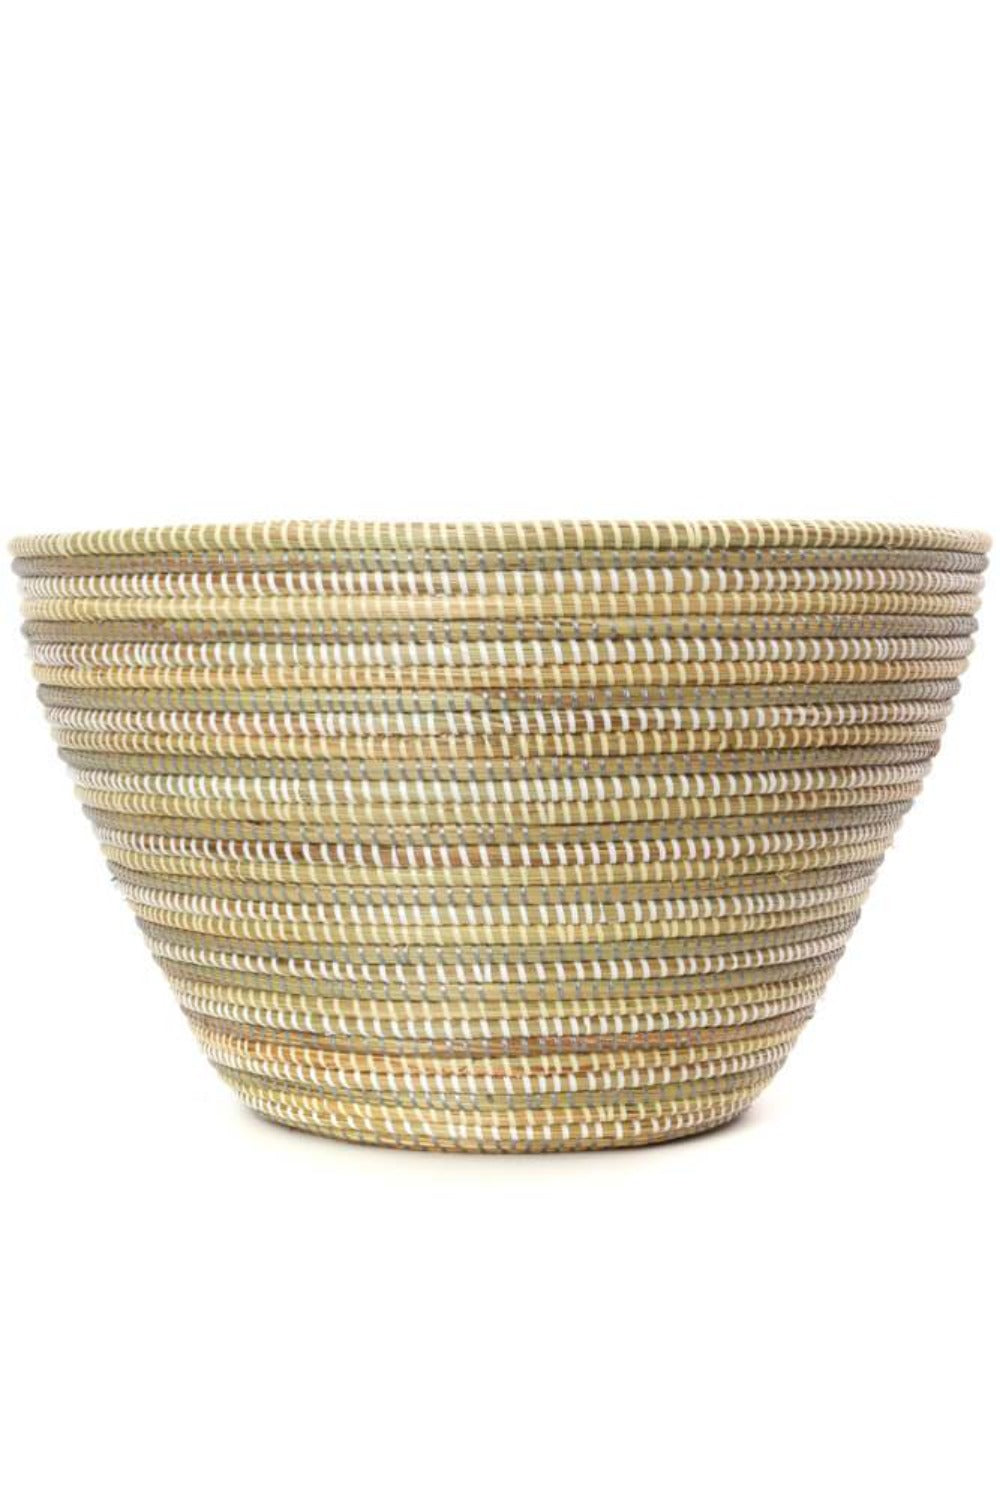 Swahili African Modern Striped Silver, Cream & White Senegalese Funnel Basket